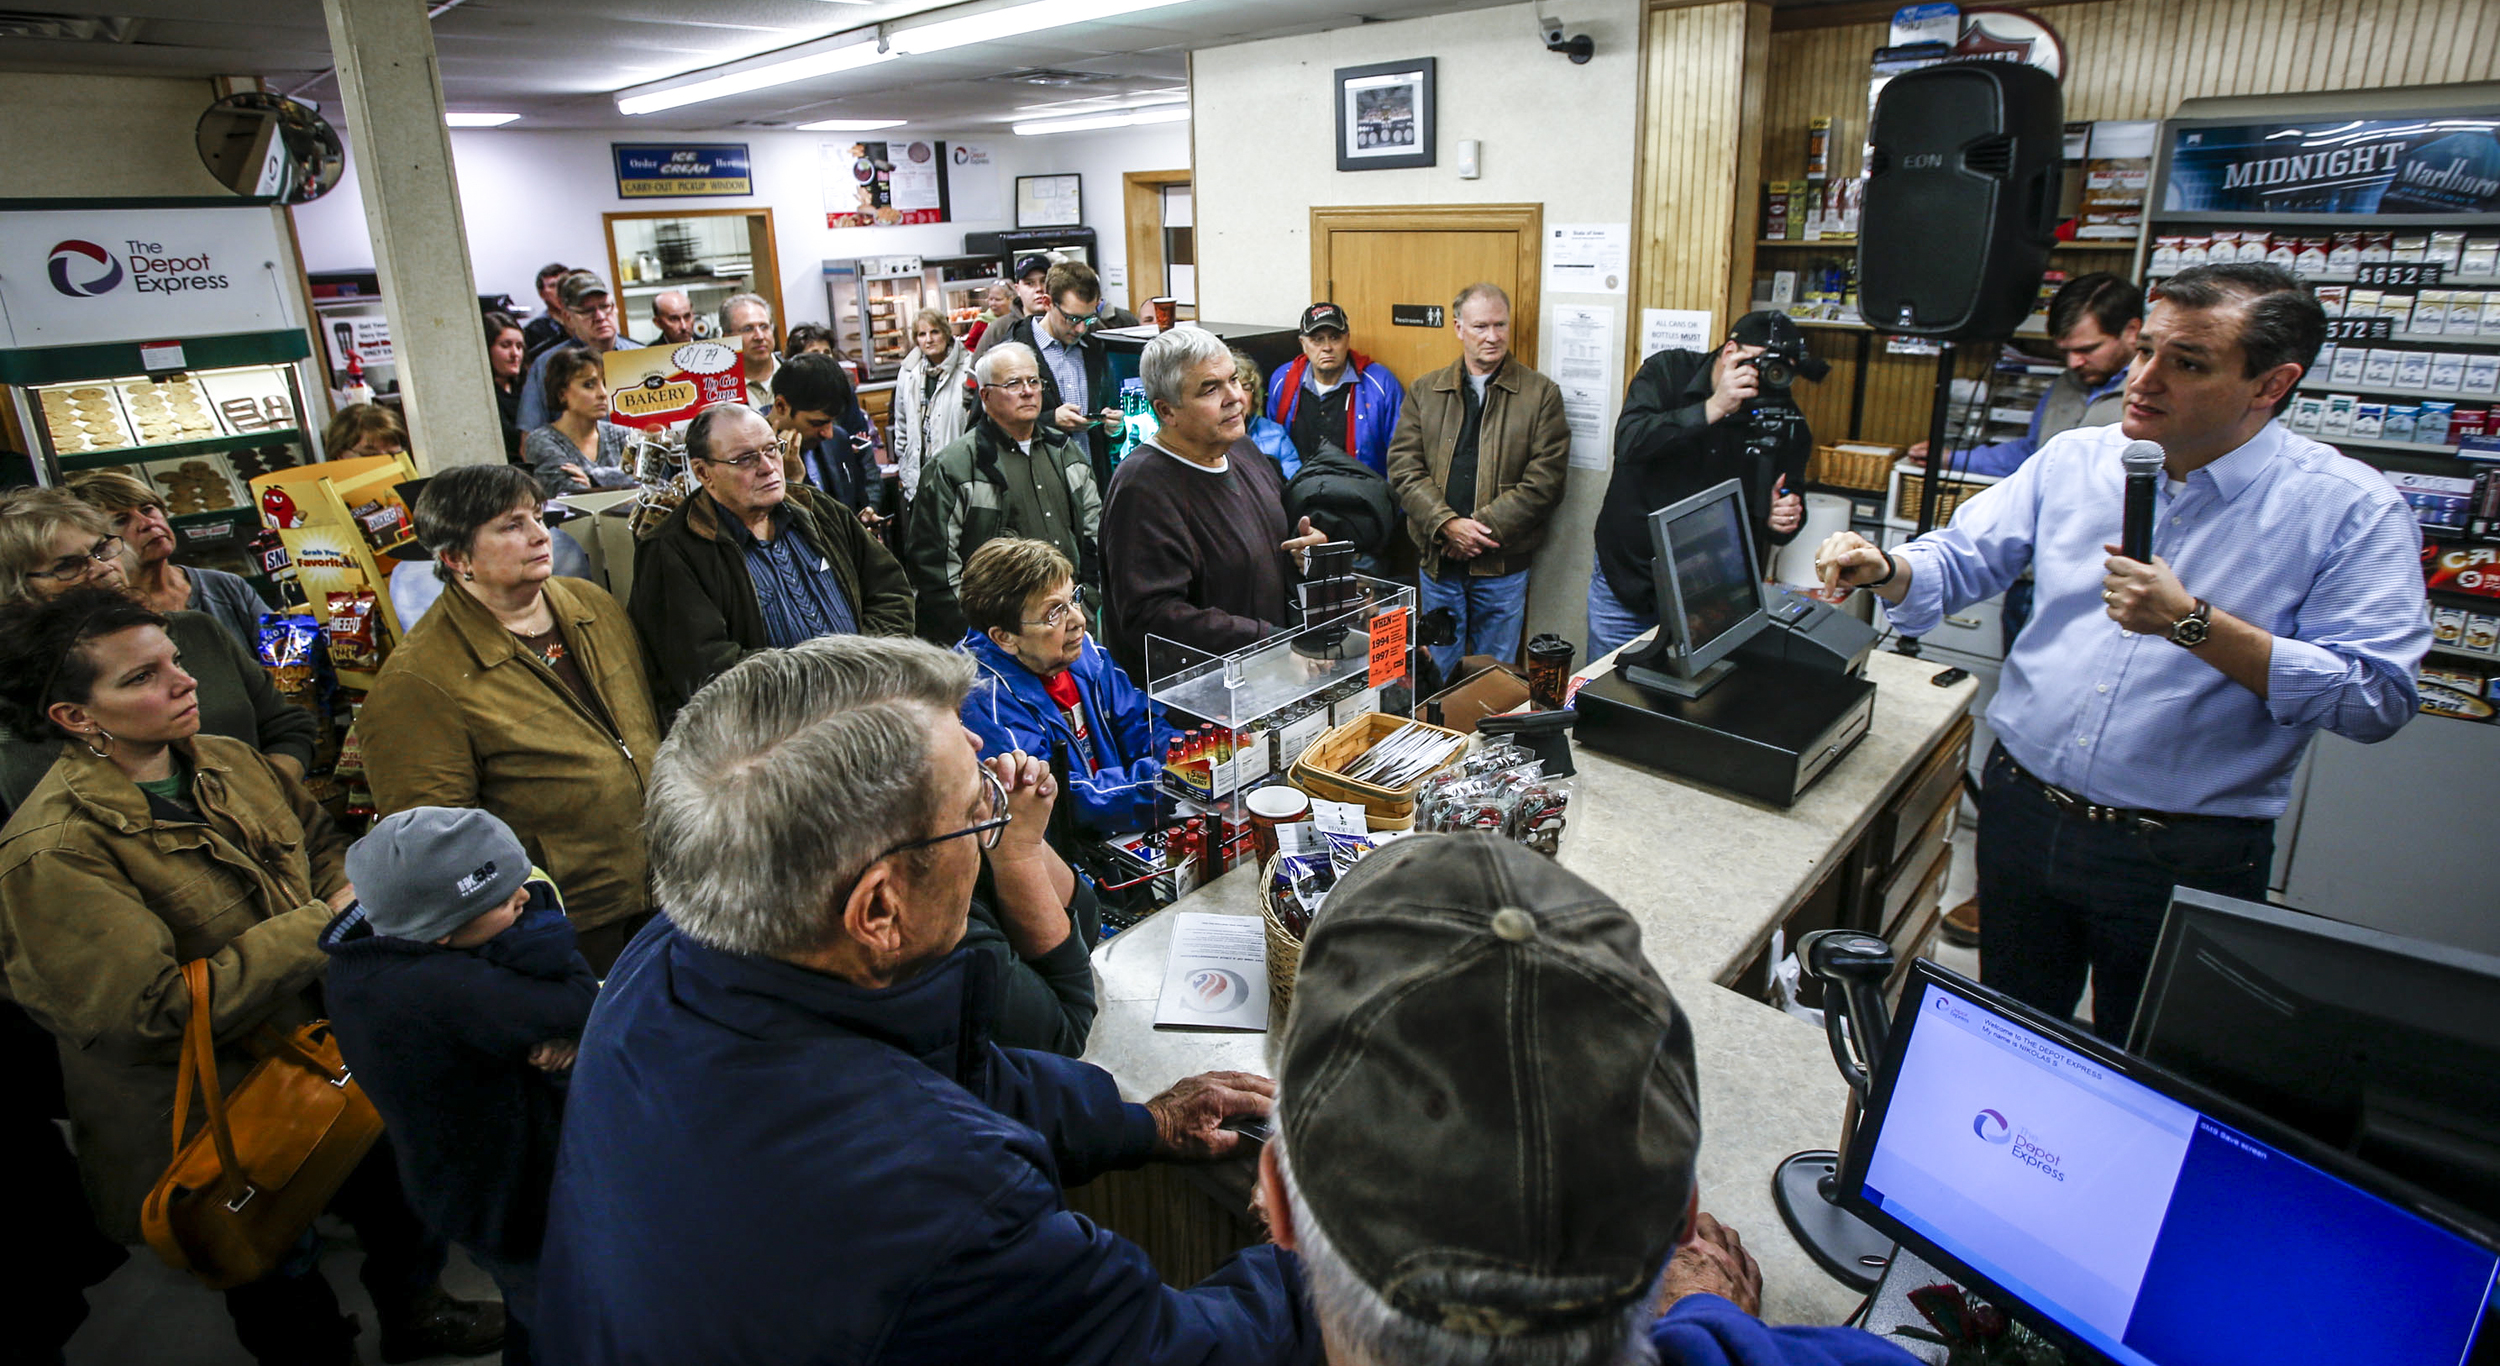 Sen. Ted Cruz speaks to a crowd packed in the Depot Express gas station in Van Horne, Iowa, Sunday, Nov. 29, 2015. The presidential hopeful made a stop at the Depot Express gas station to give a speech and answer questions with gathered community members and supporters.